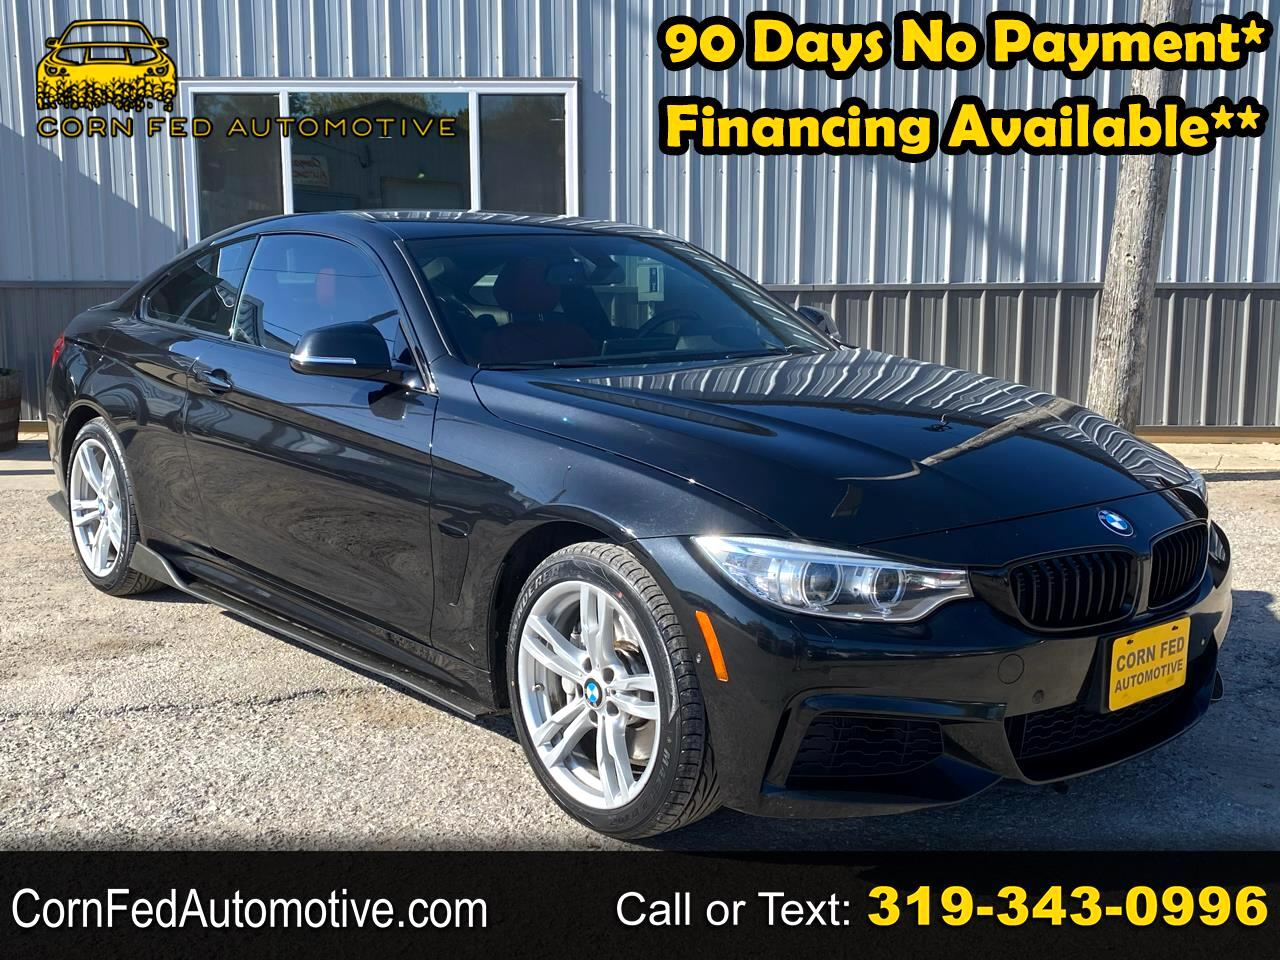 BMW 4 Series 2dr Cpe 435i xDrive AWD 2014